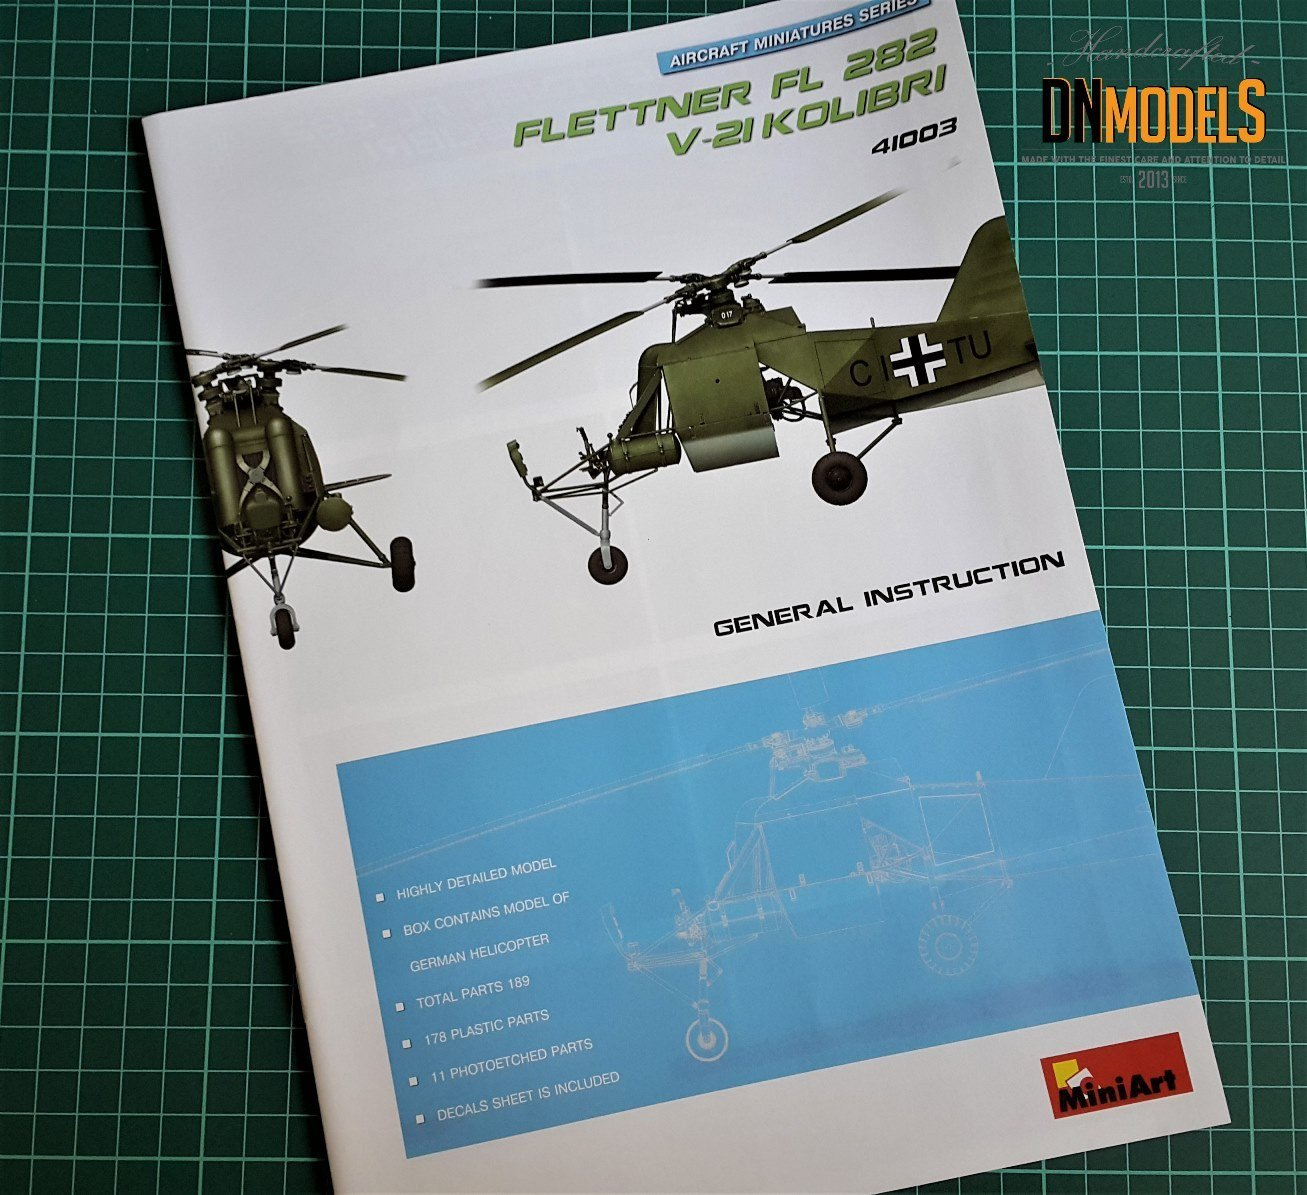 Flettner Fi 282 V21 kolibri dn models masks for scale models review unboxing miniart colibri